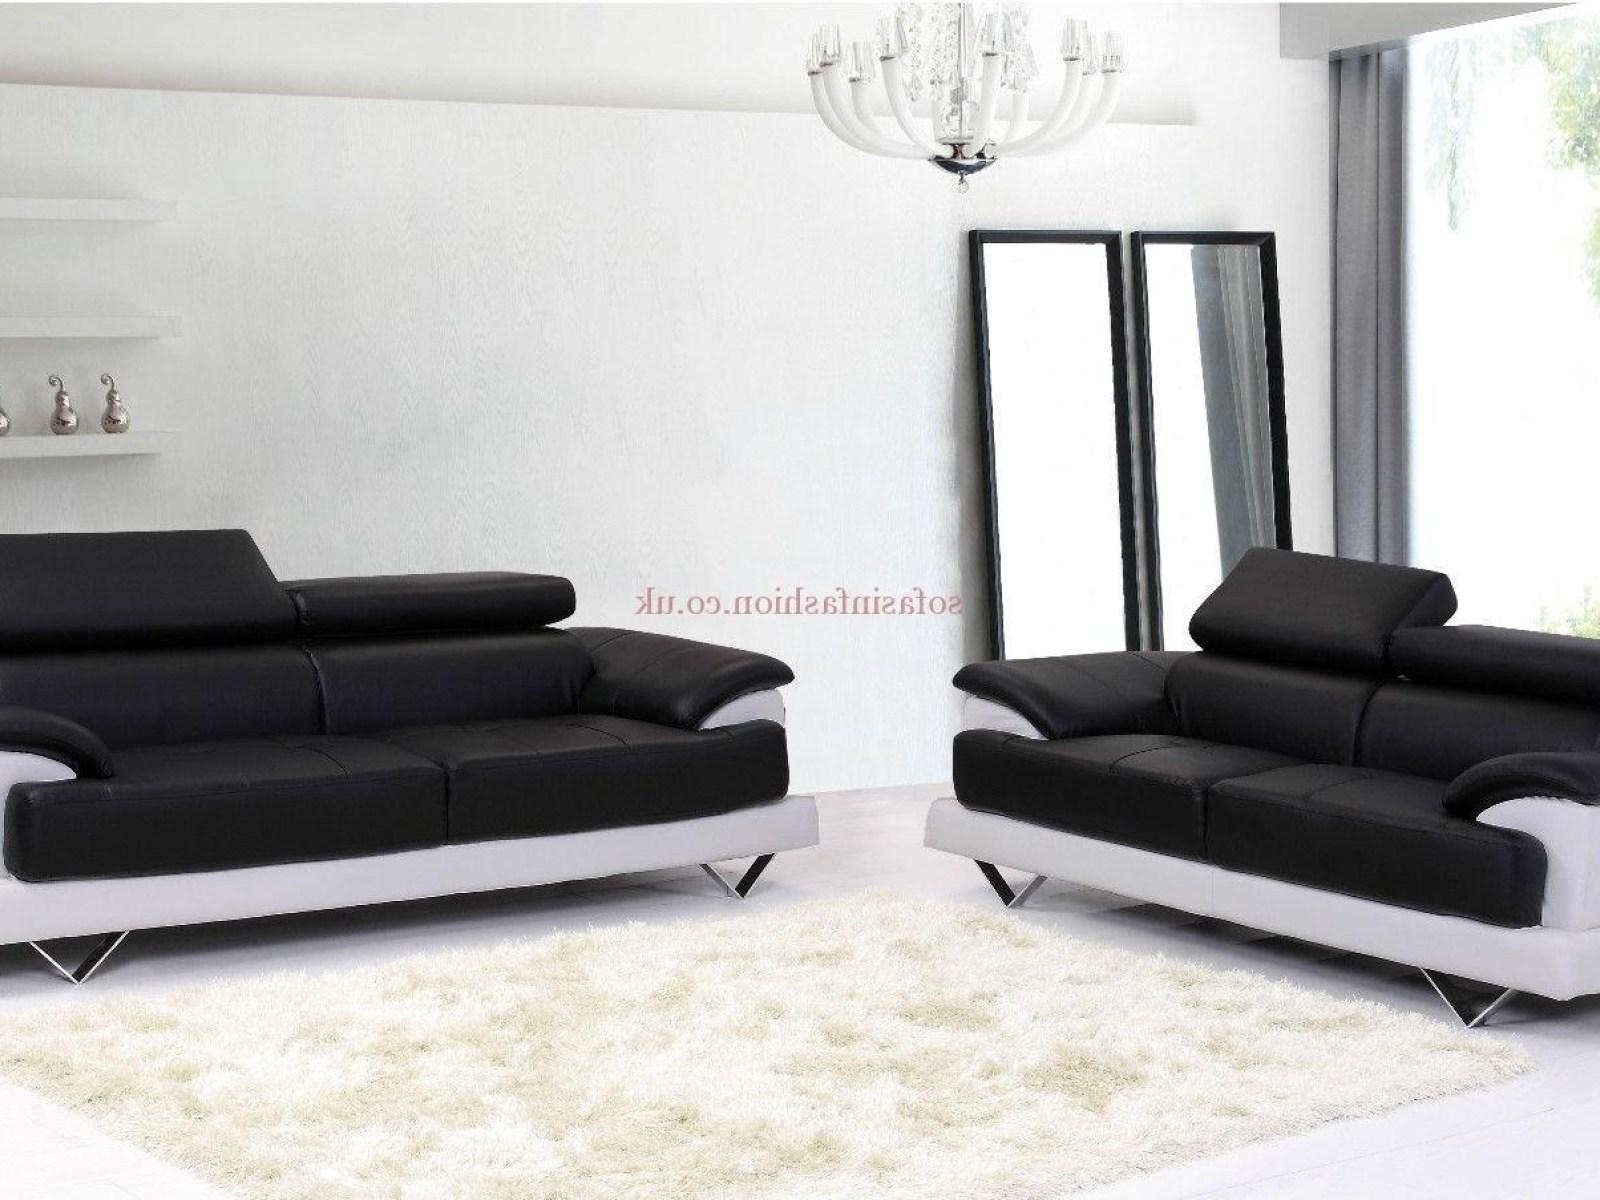 ▻ Sofa : 8 Leather Sofa Set Black And White Cosmo Sofas In Regarding Black And White Sofas (View 11 of 20)